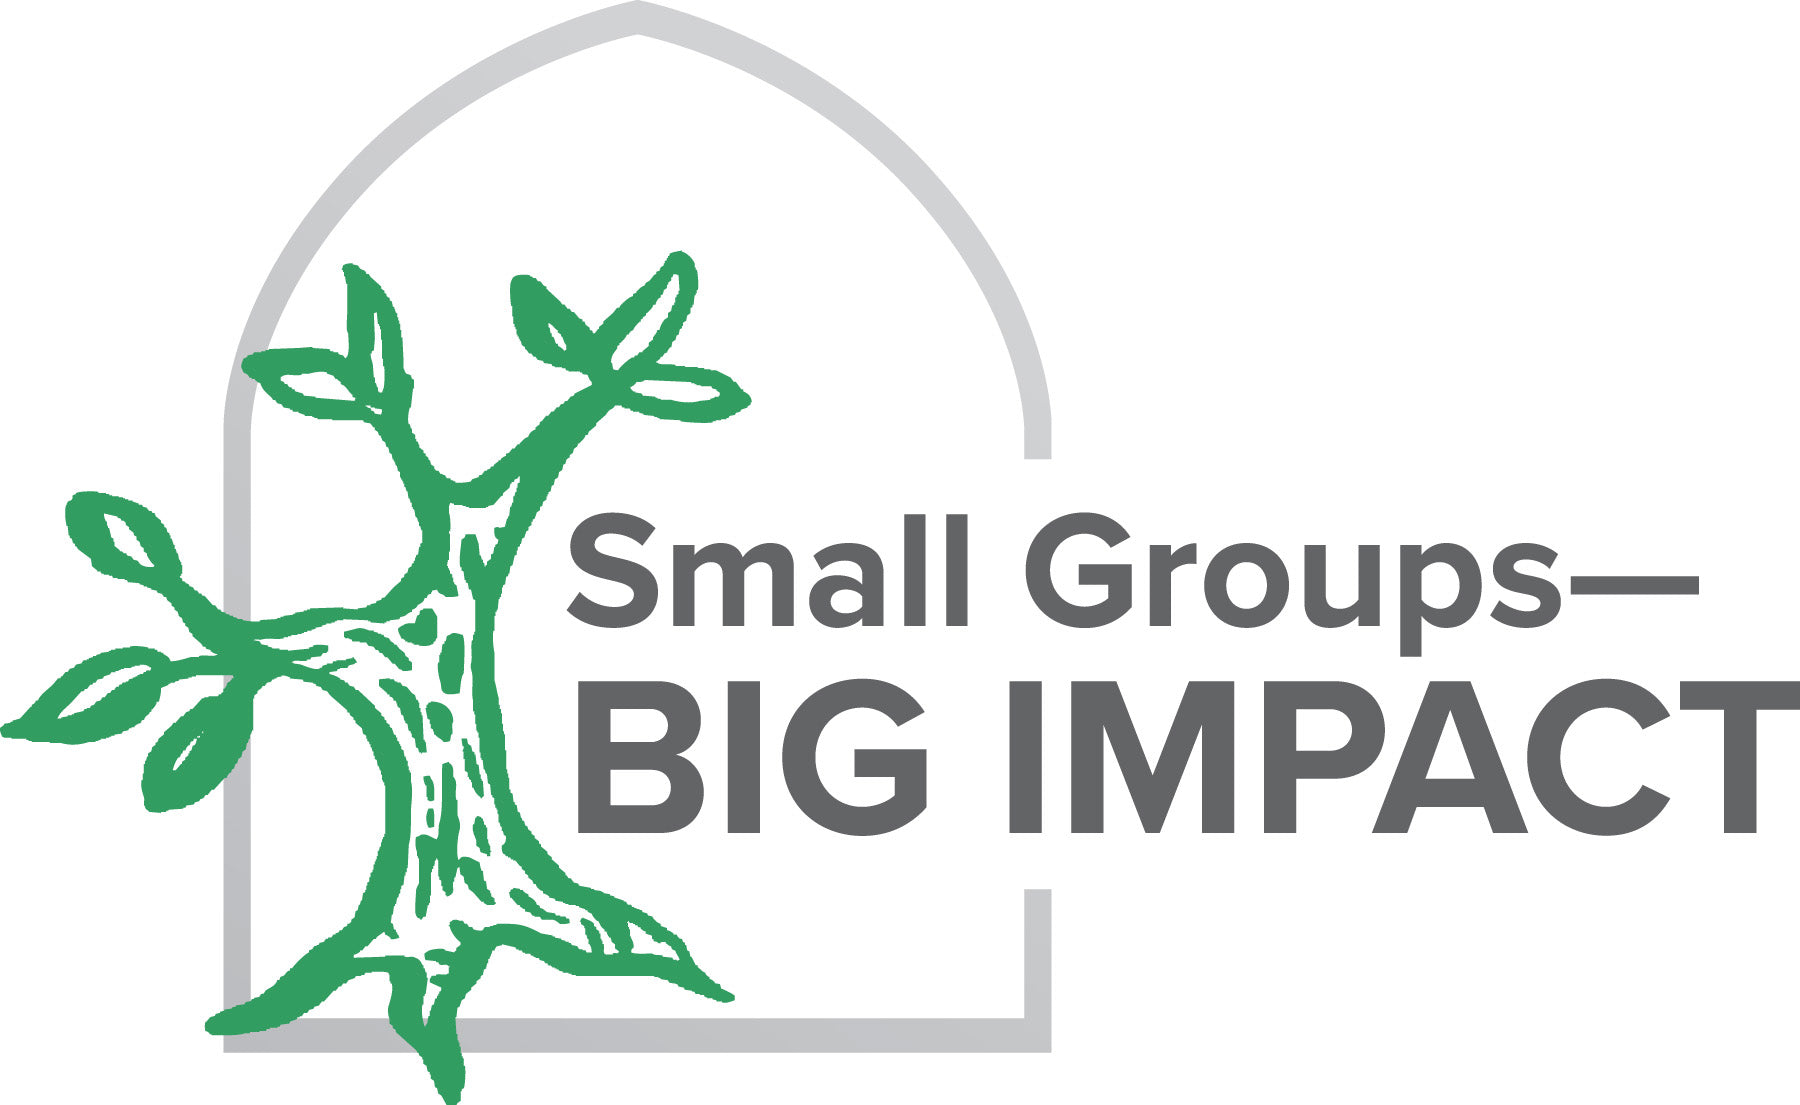 Small Groups—Big Impact